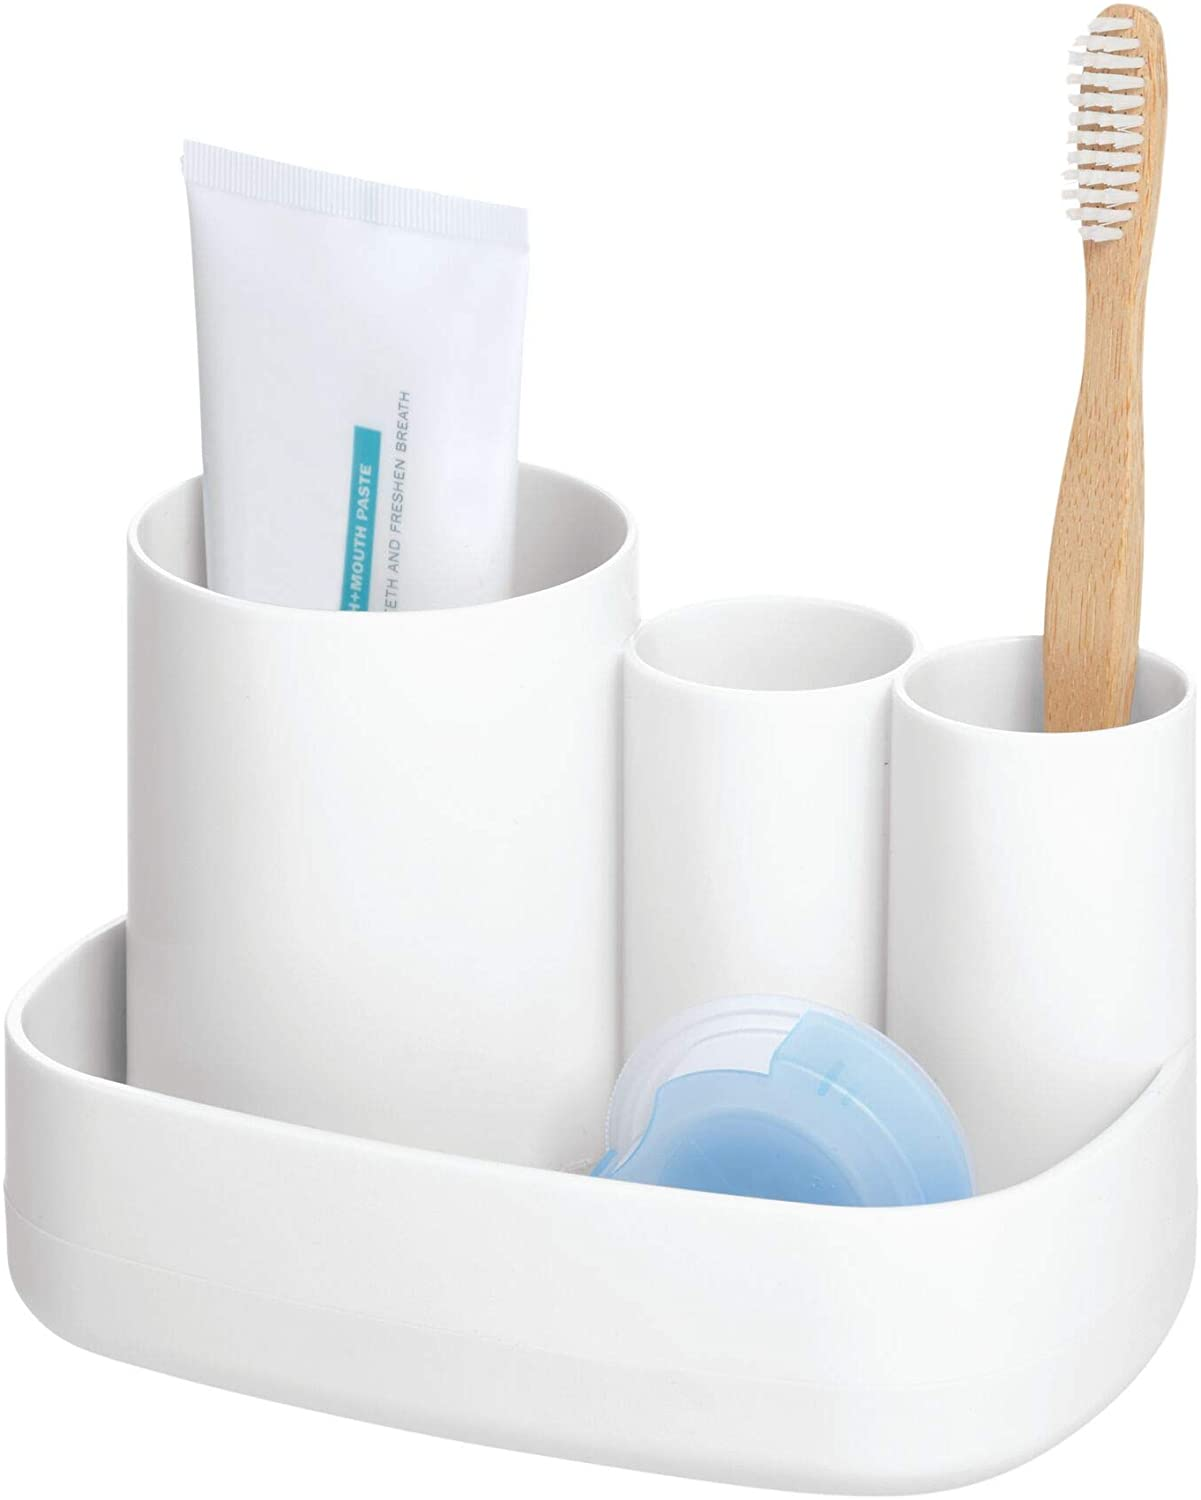 iDesign Cade BPA-Free Plastic Toothbrush Holder Dealing full price reduction Wholesale and S Toothpaste